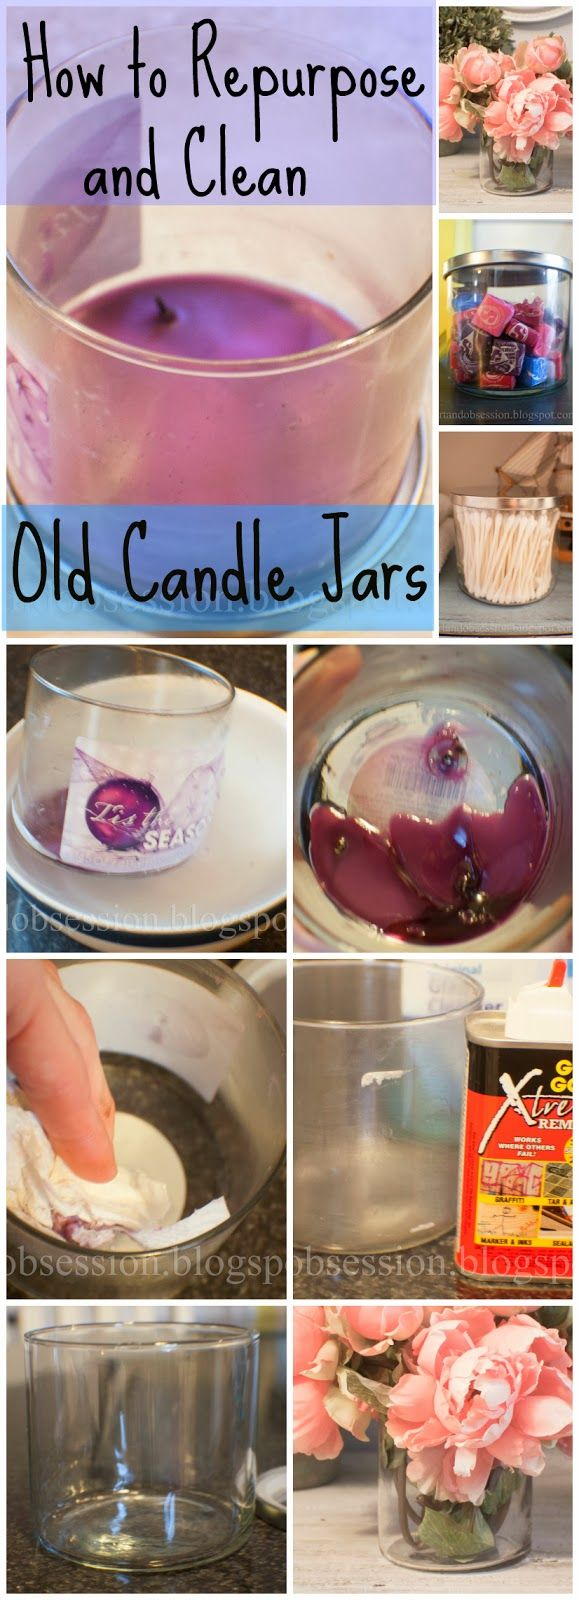 Re-purposed candle jars. Easy diy tutorial on the blog, tutorial voor het verwijderen van kaarsvet uit een glas,